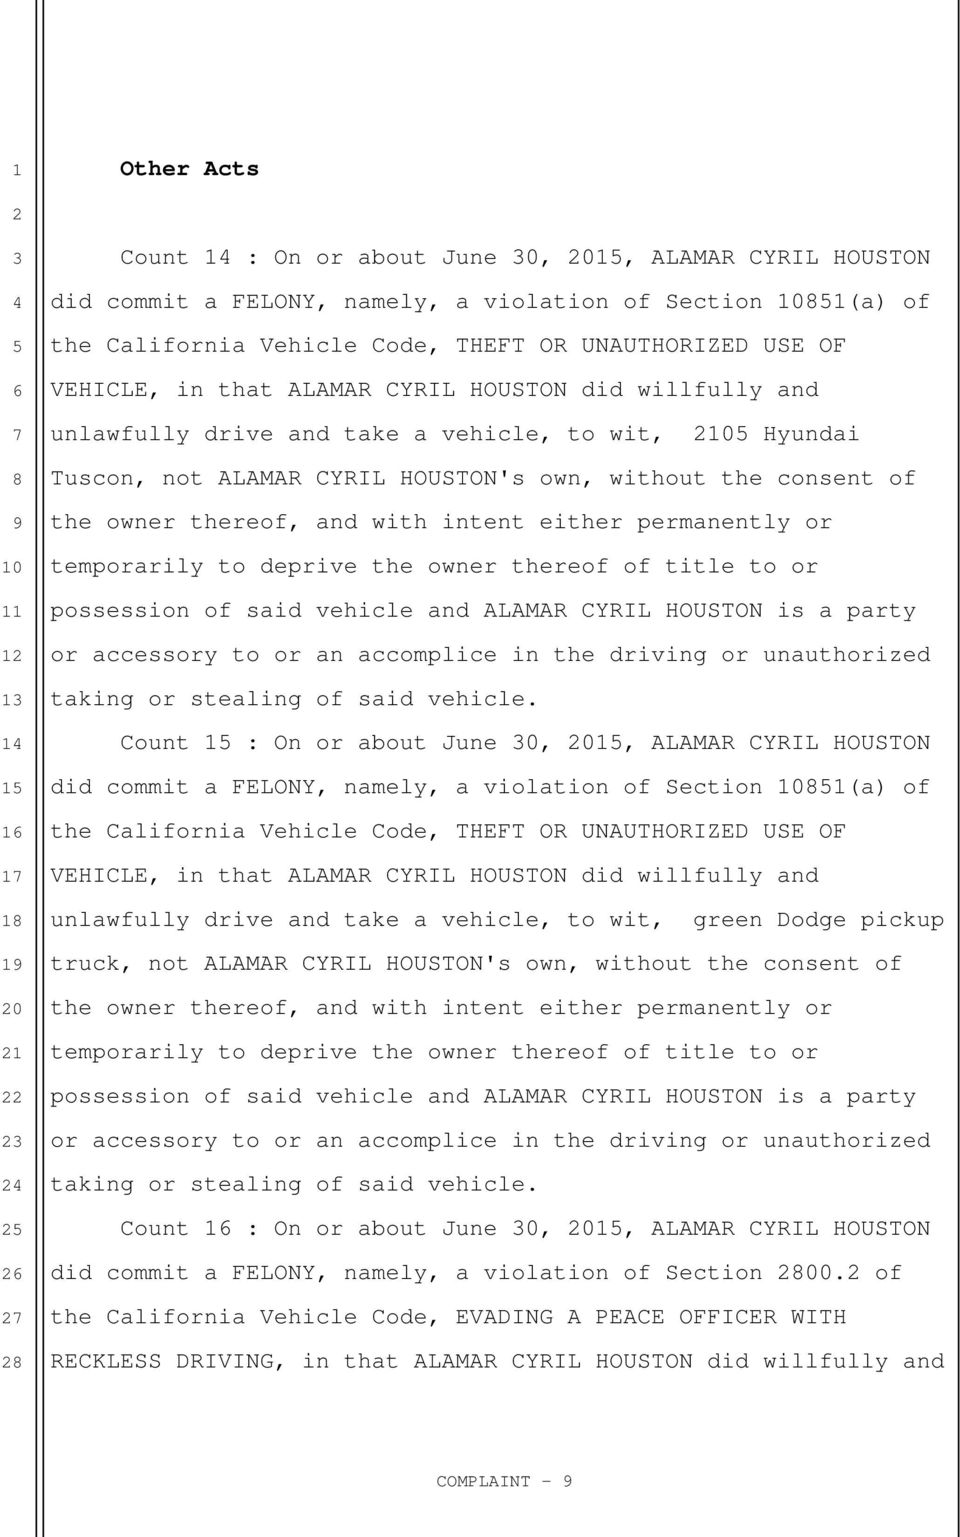 permanently or temporarily to deprive the owner thereof of title to or possession of said vehicle and ALAMAR CYRIL HOUSTON is a party or accessory to or an accomplice in the driving or unauthorized